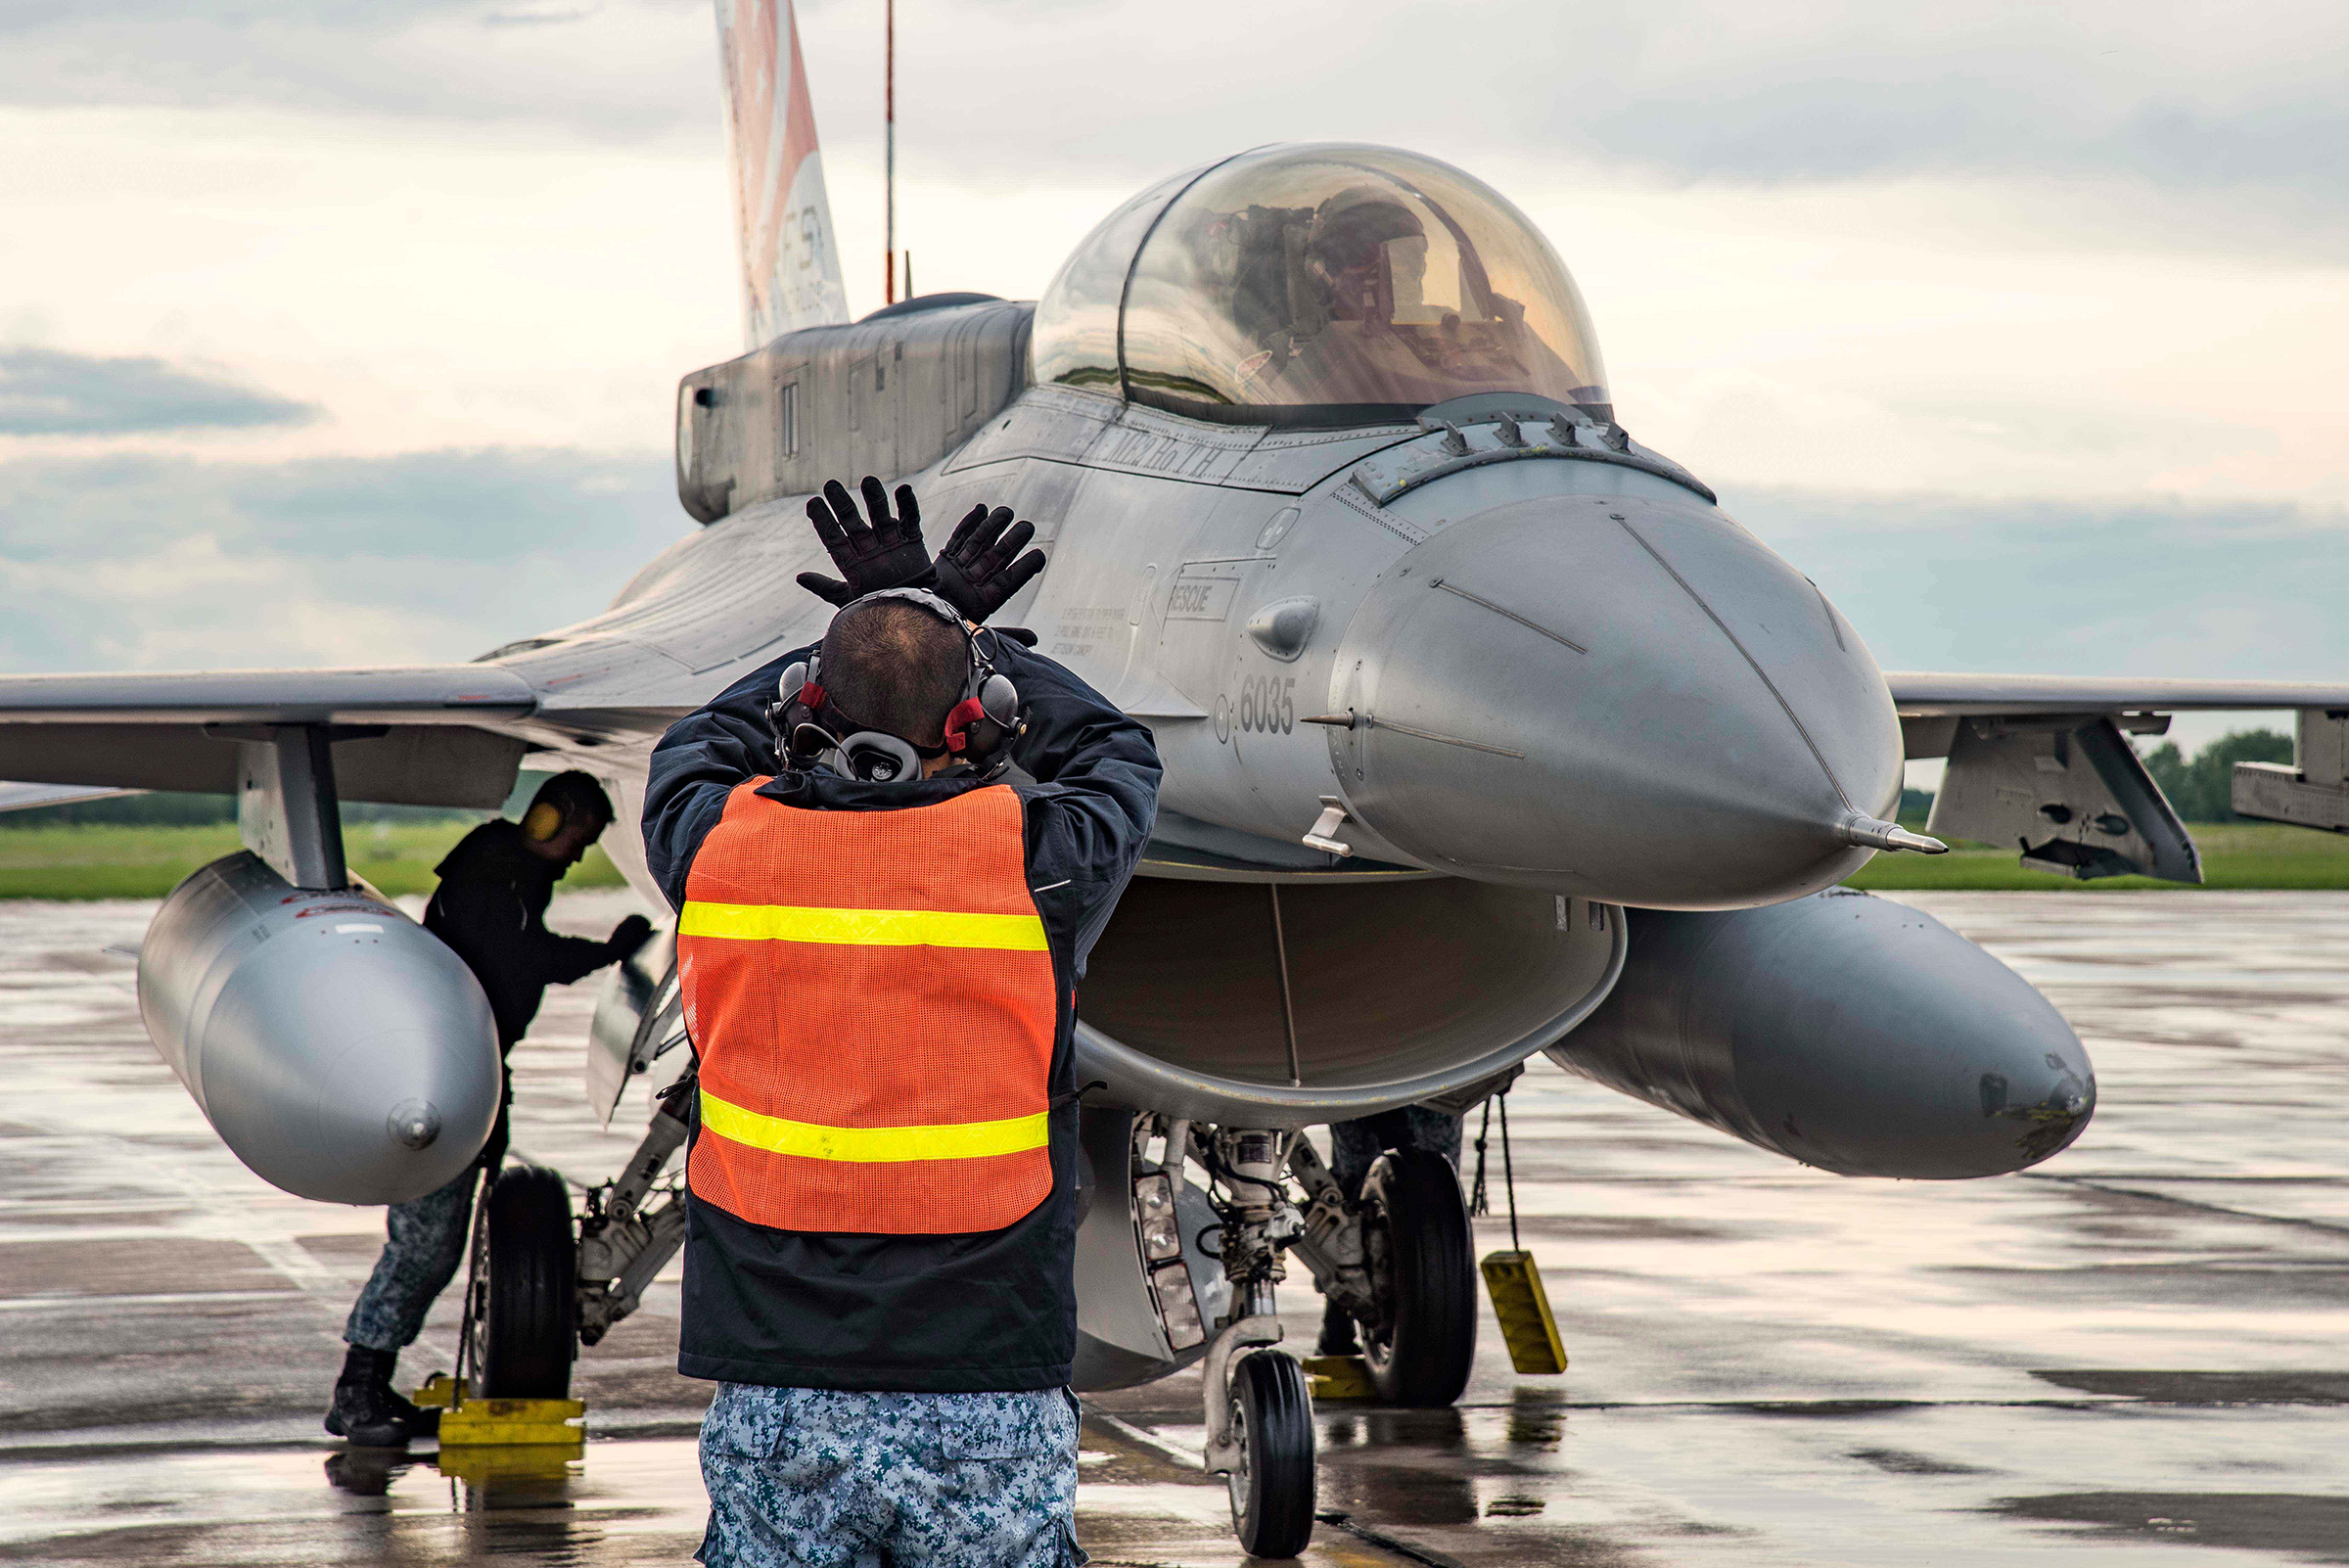 A member of the groundcrew from the Republic of Singapore Air Force, 425th Fighter Squadron, marshal one of their F-16 Falcon fighters during Exercise Maple Flag 50 at 4 Wing Cold Lake on June 9, 2017. PHOTO: Corporal Justin Roy, CK07-2017-0460-012